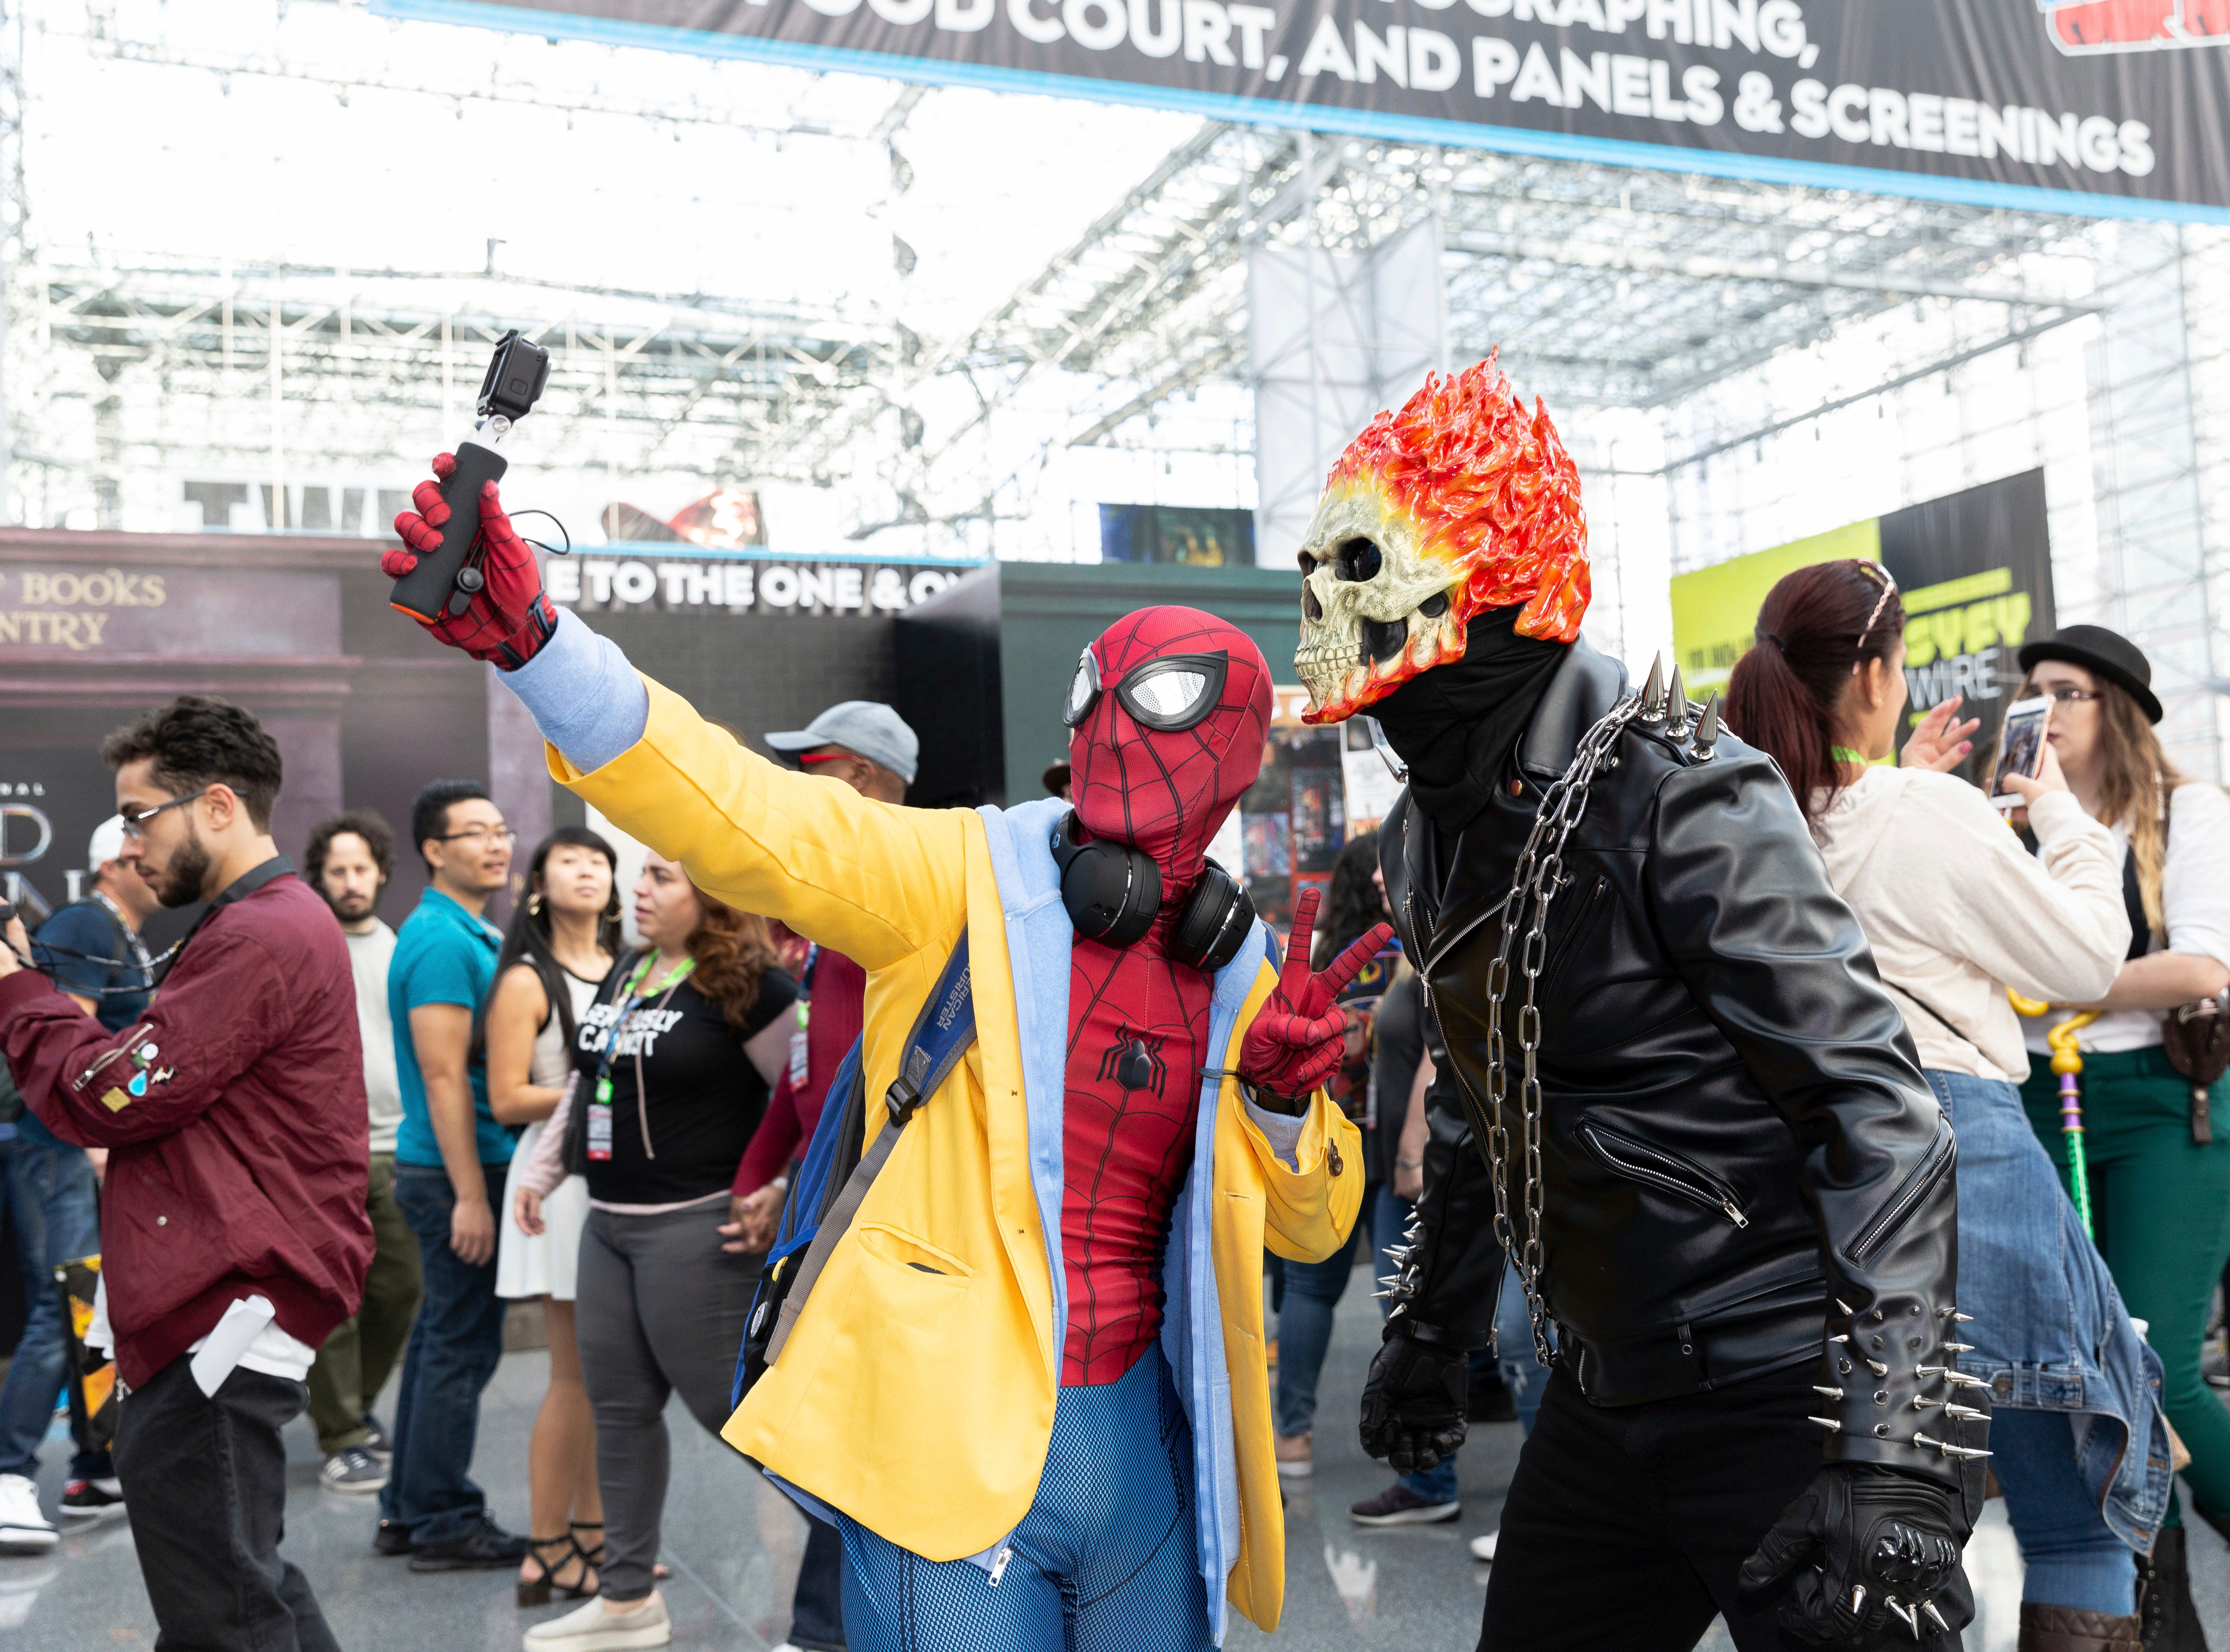 Attendees dressed in costume take a selfie on the second day of New York Comic Con, Friday, Oct. 5, 2018. (AP Photo/Steve Luciano)